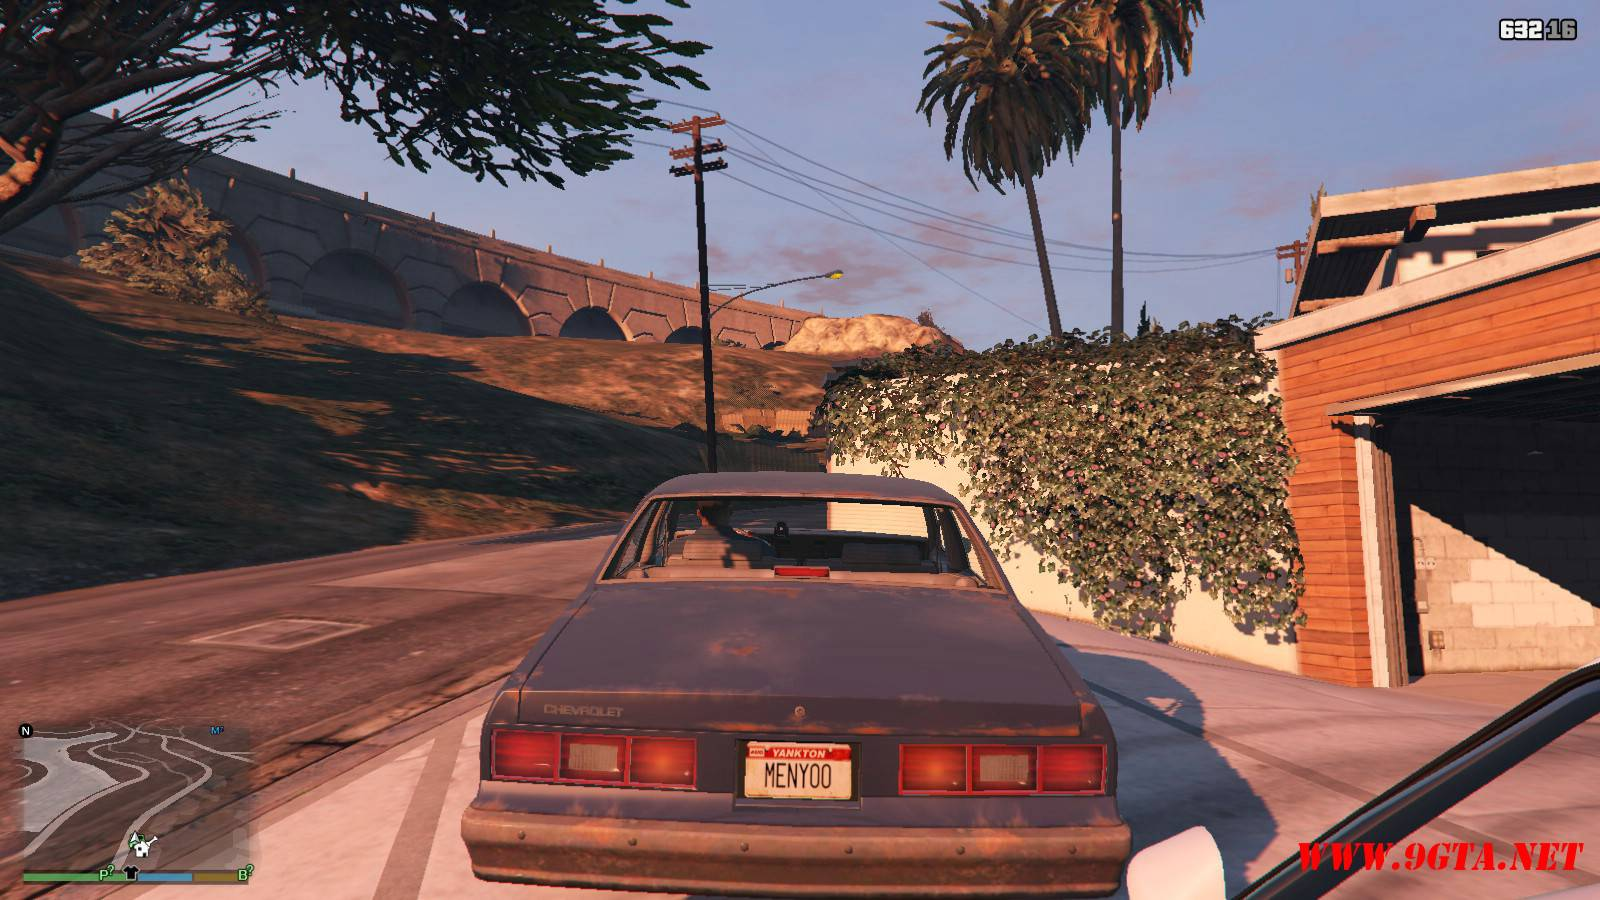 1985 Chevrolet Impala v1.1 Mod For GTA5 (6)